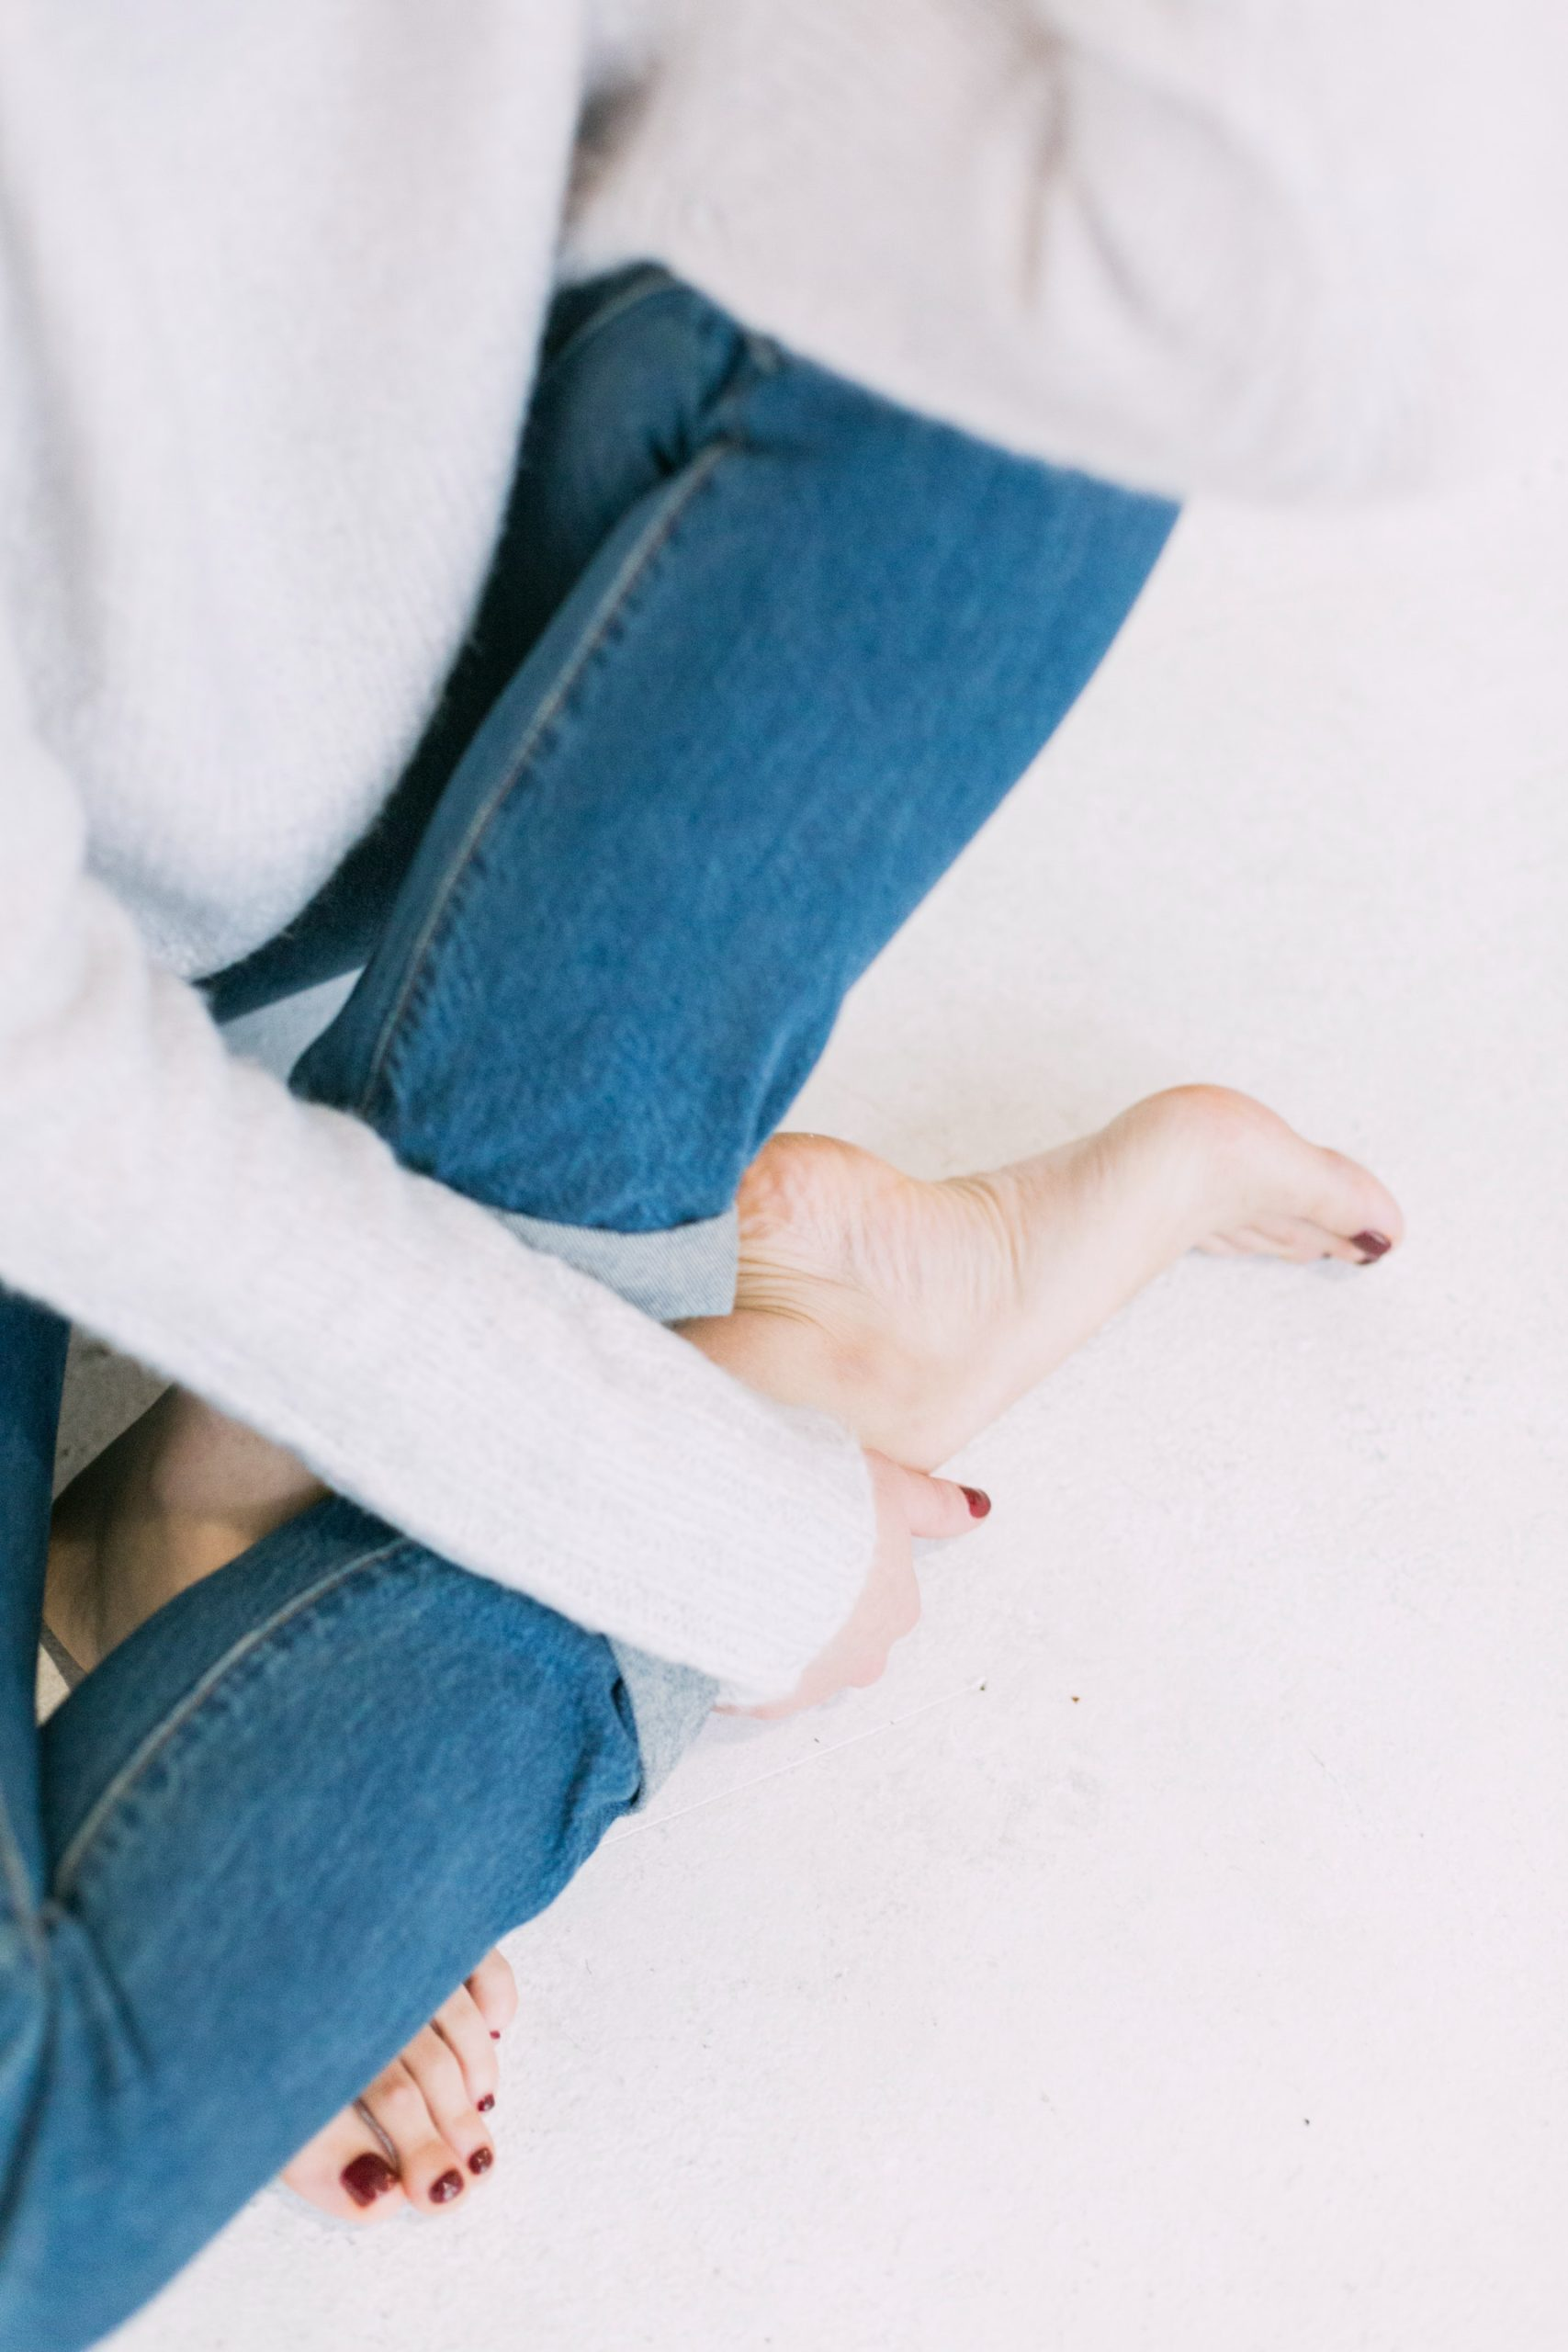 Why Do My Feet Hurt When I Stand For a Long Time?